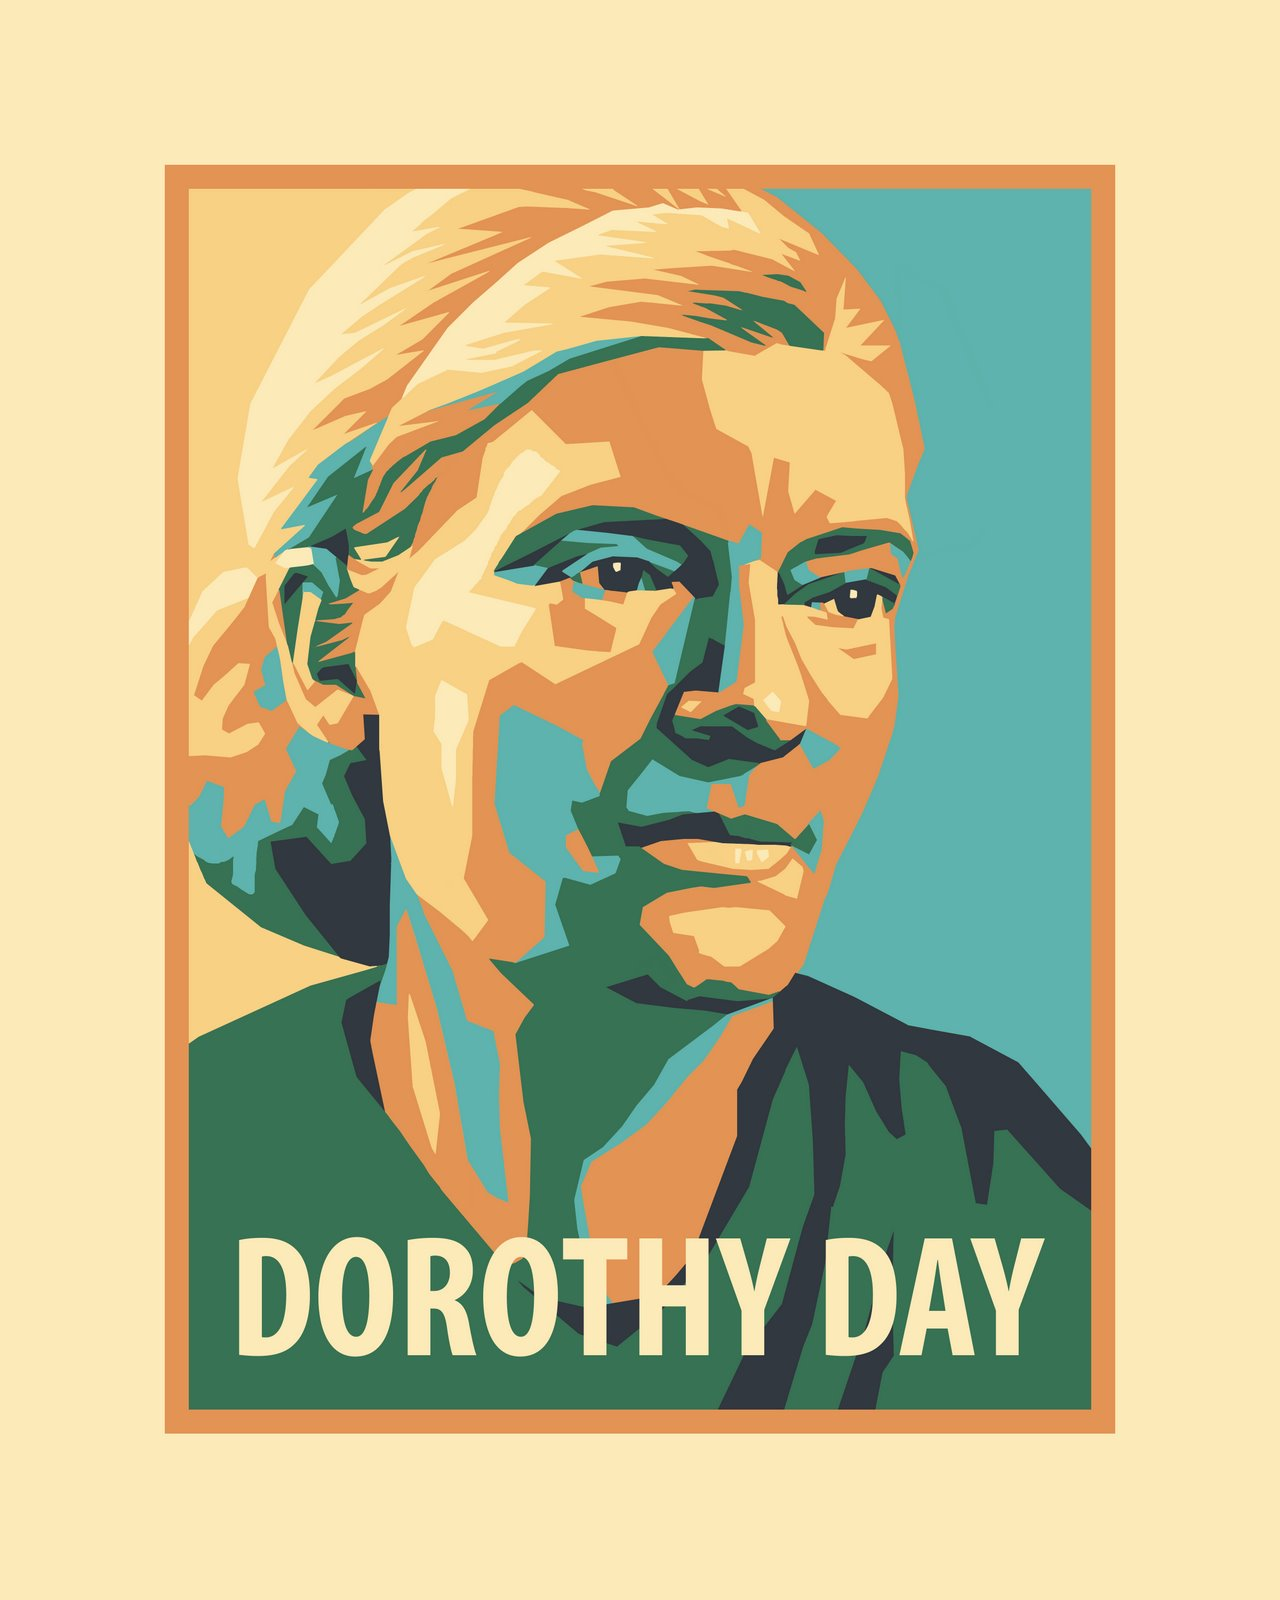 The life and social contributions of dorothy day